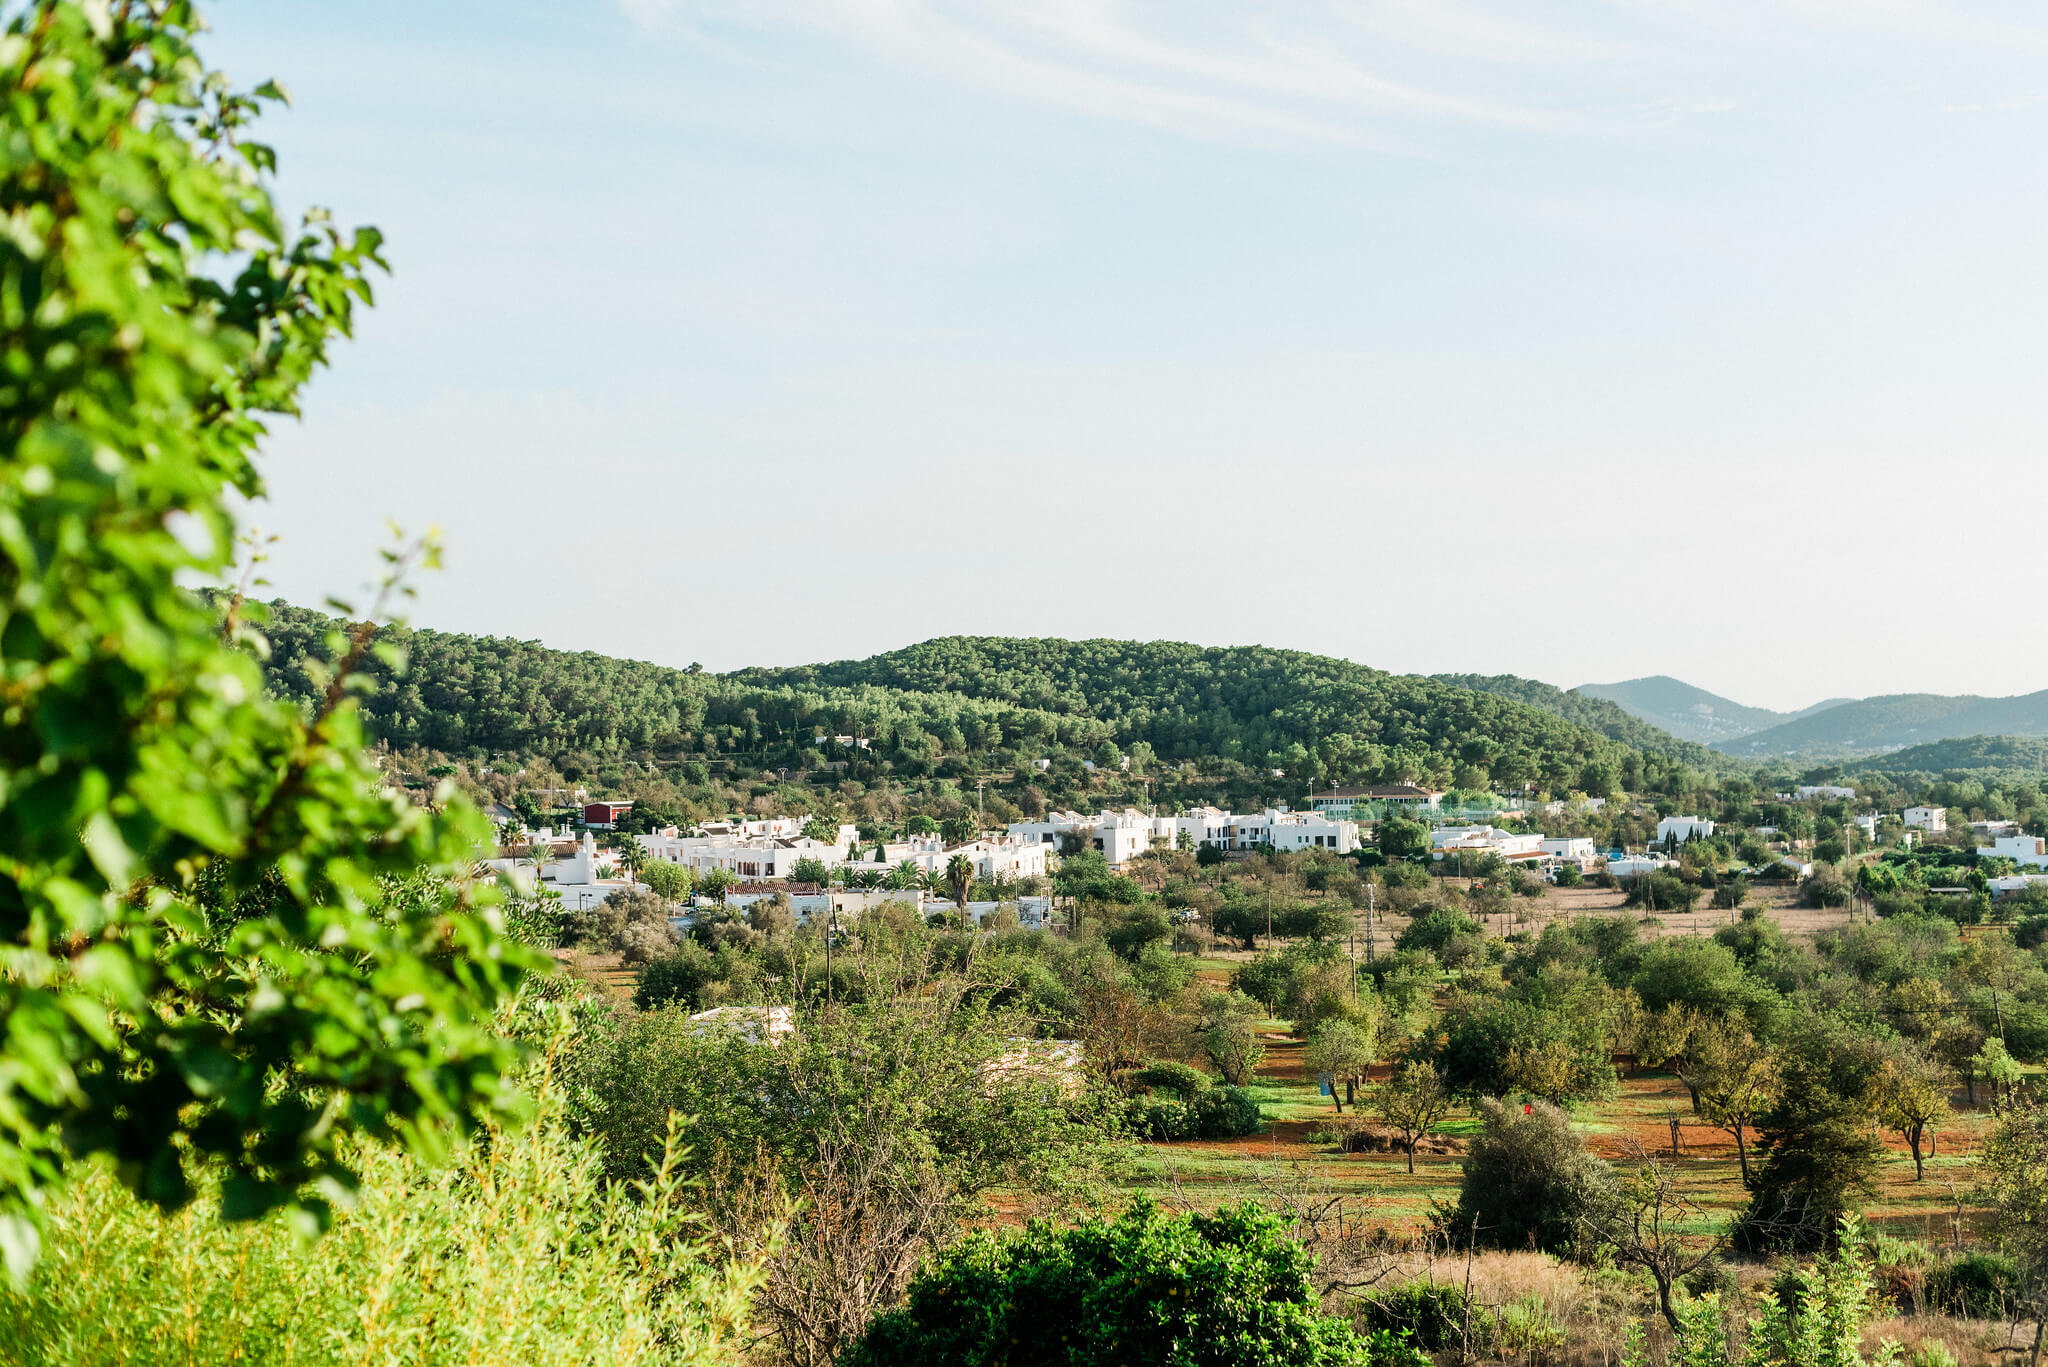 https://www.white-ibiza.com/wp-content/uploads/2020/05/white-ibiza-villas-where-to-buy-san-carlos-04.jpg